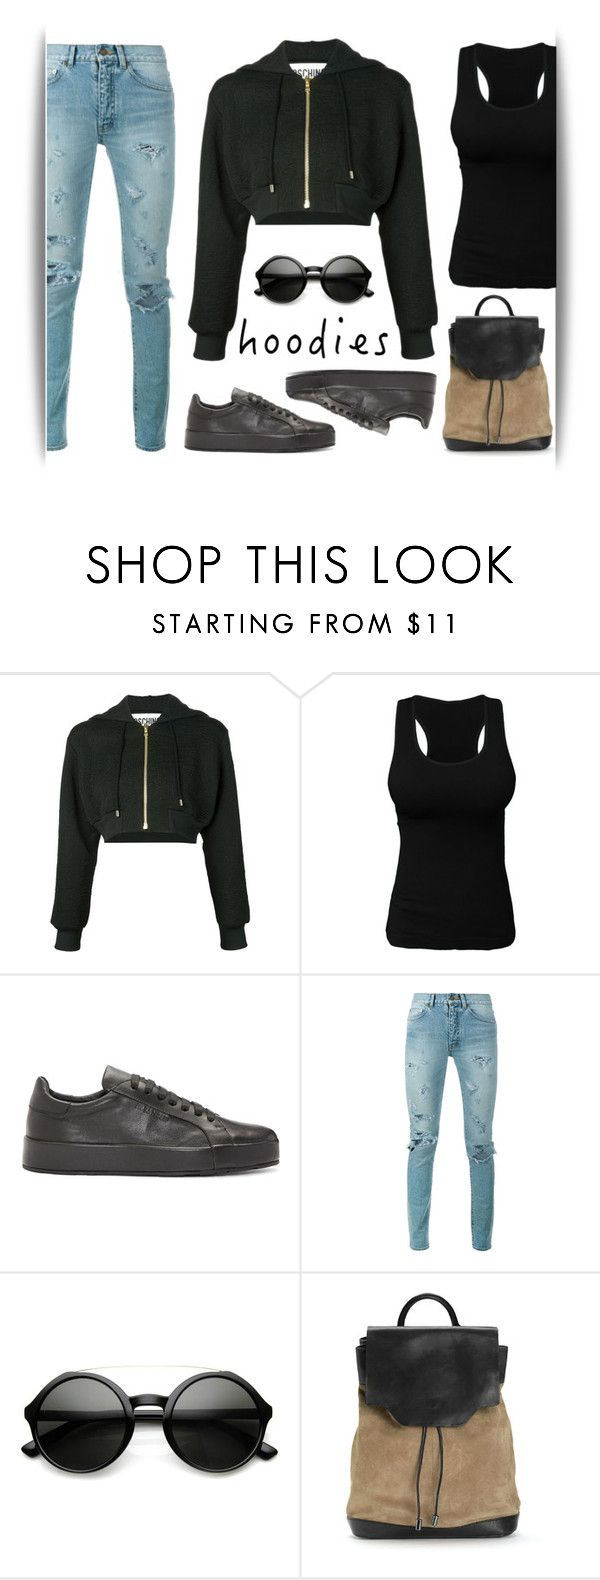 """Tot"" by maritza-ade ❤ liked on Polyvore featuring Moschino, Jil Sander, Yves Saint Laurent, ZeroUV, rag & bone and Hoodies"